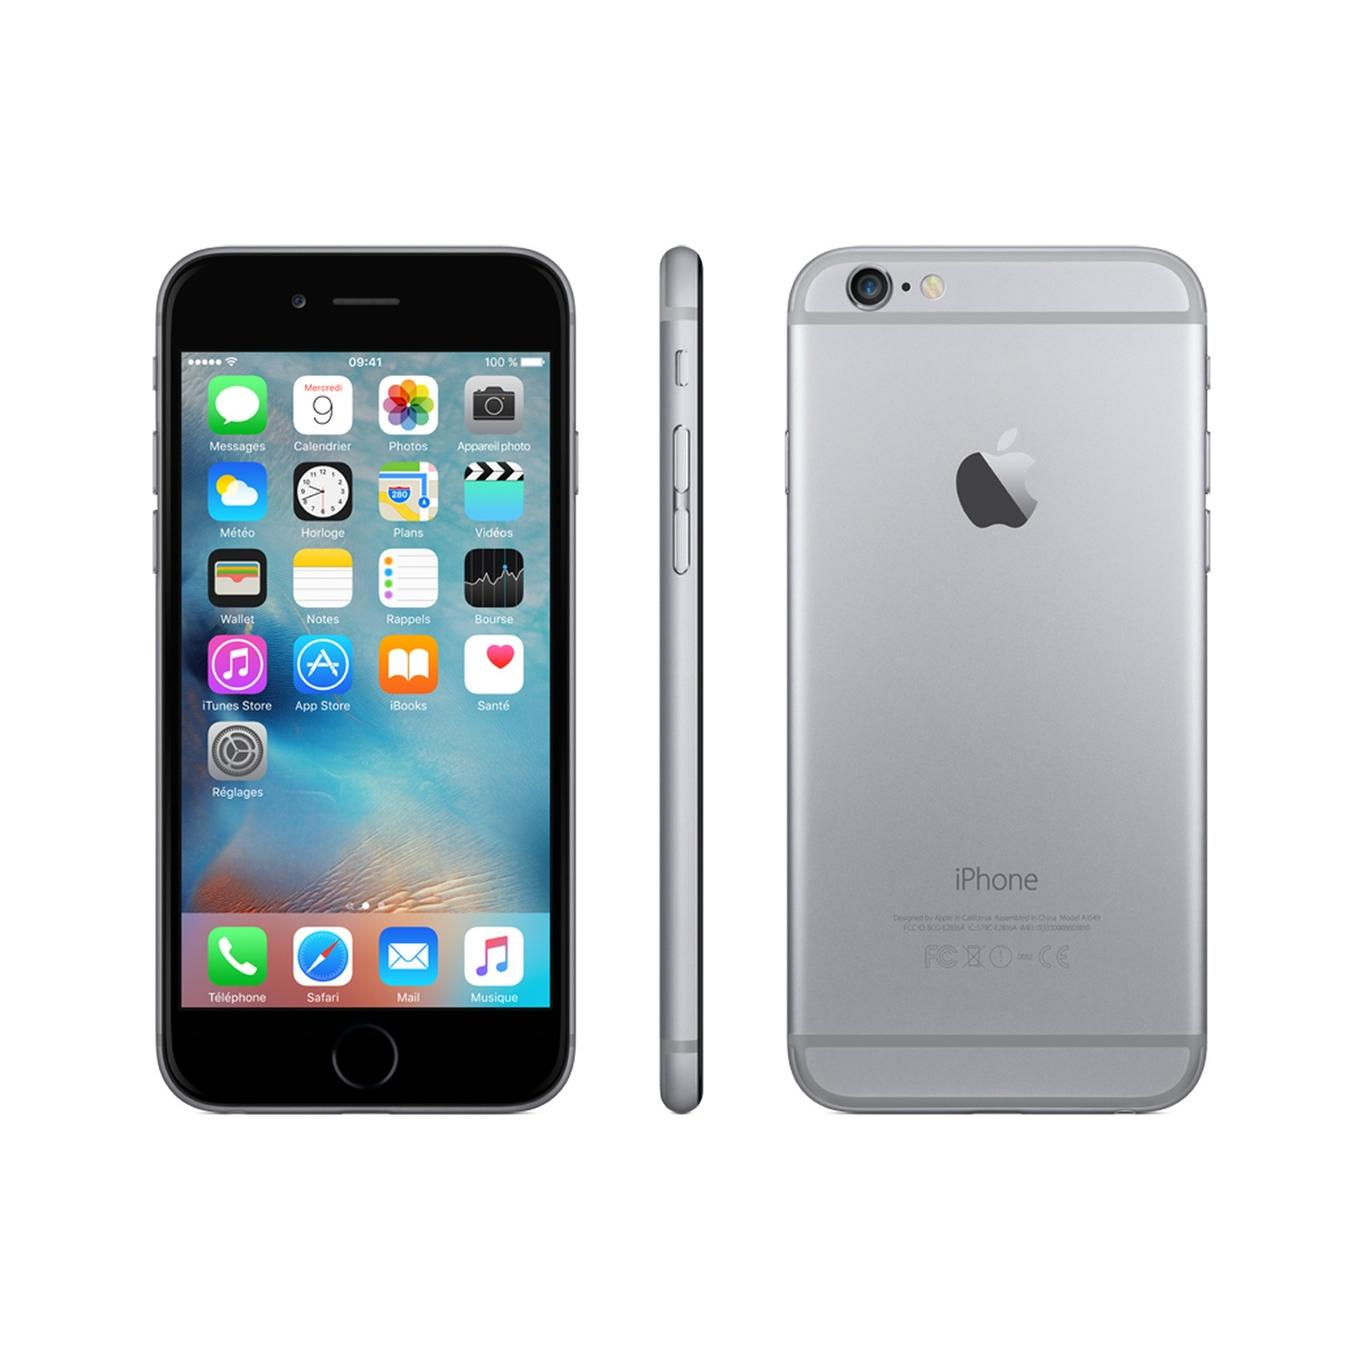 iPhone 6 64 GB - Gris espacial - Orange